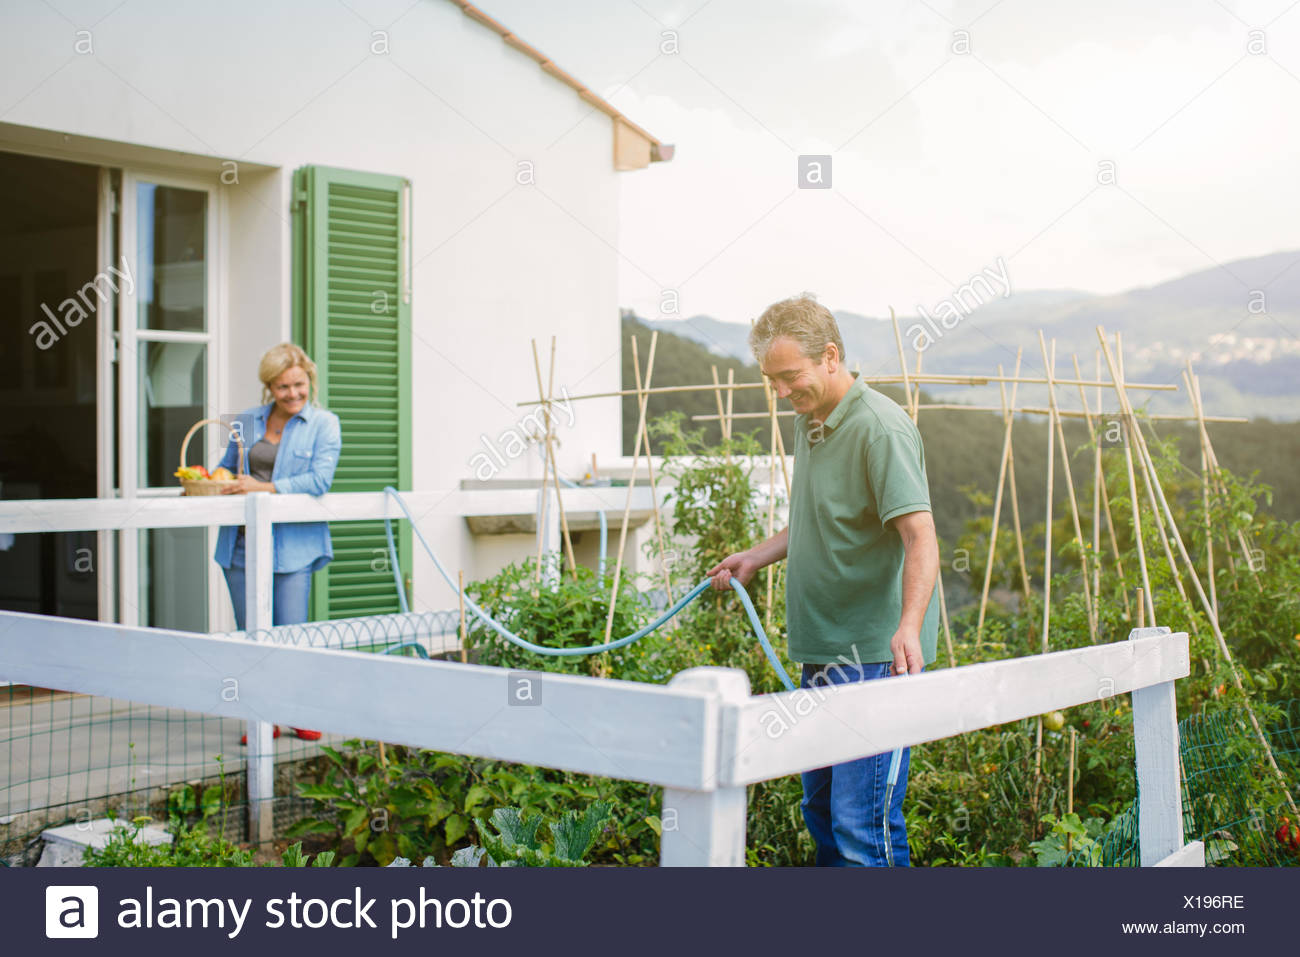 Mature man watering vegetable garden with hosepipe - Stock Image